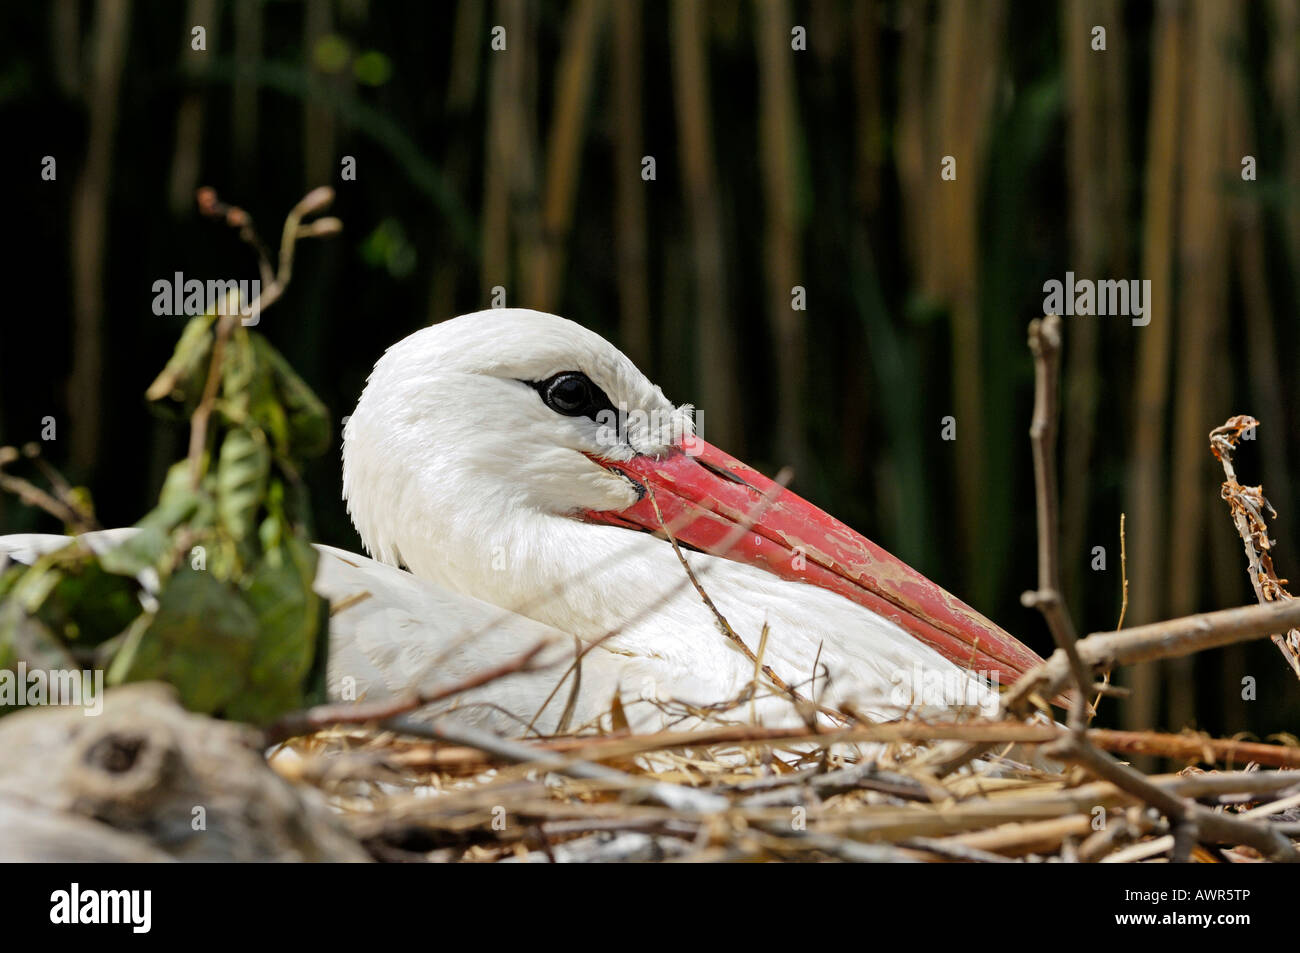 White stork (Ciconia ciconia) brooding on nest, Zurich Zoo, Zurich, Switzerland, Europe Stock Photo